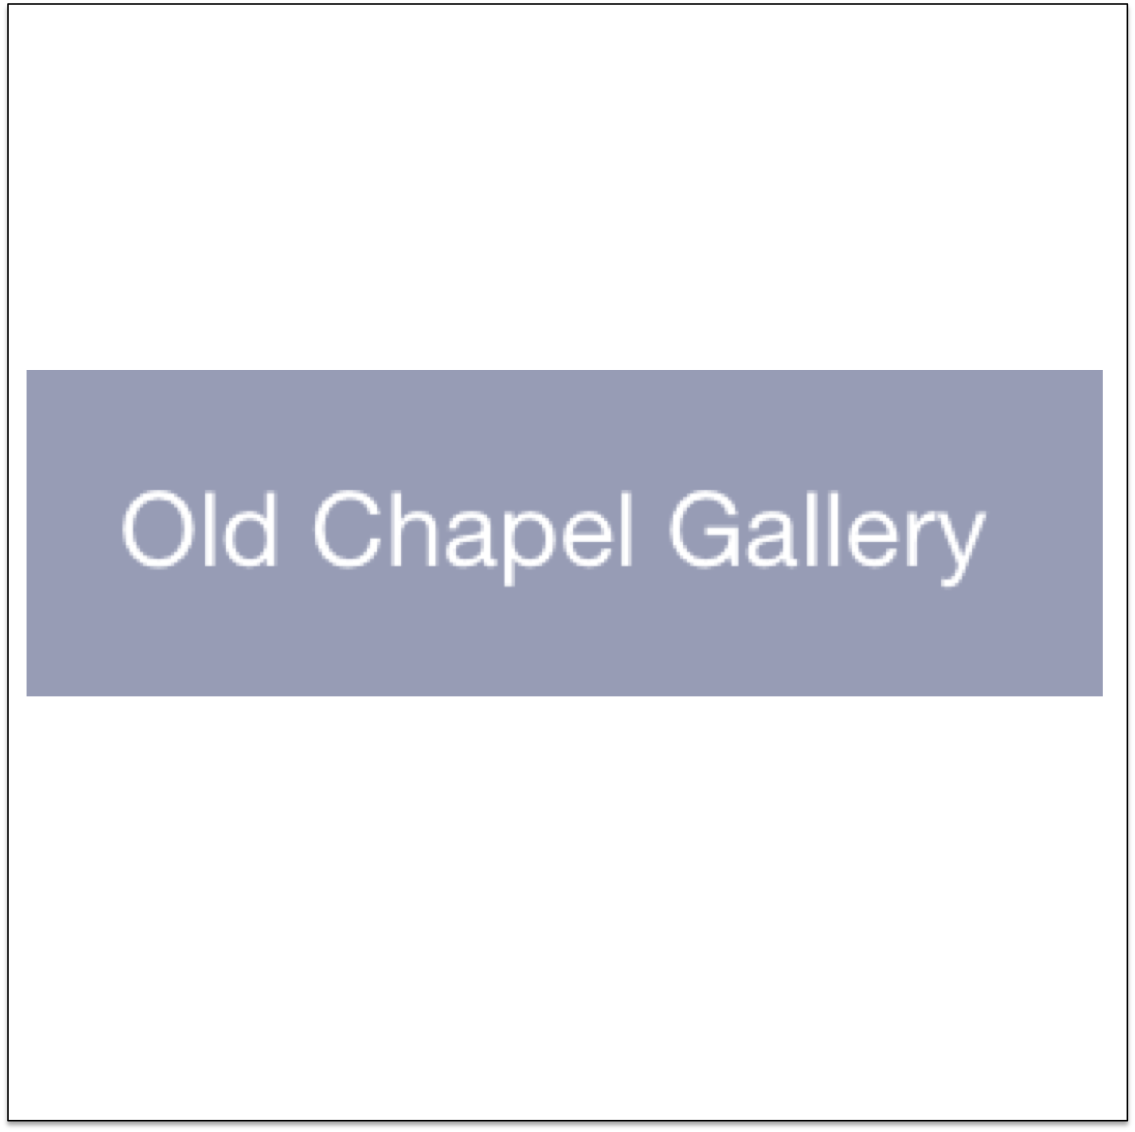 Old Chapel Gallery  Pembridge, Herefordshire